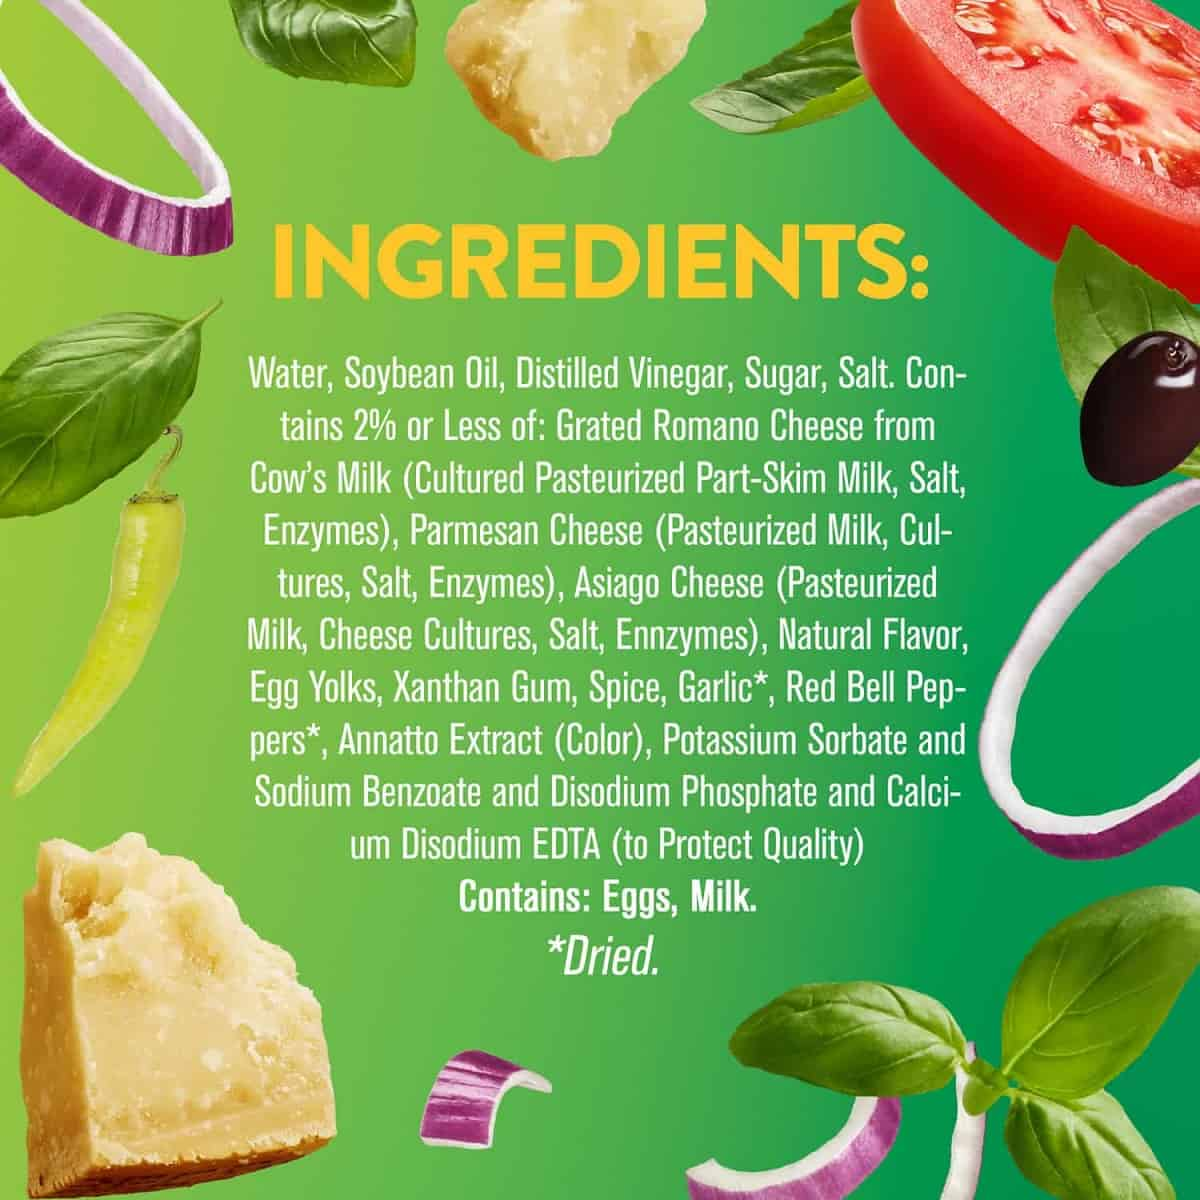 A graphic from a store-bought salad dressing showing unhealthy ingredients.